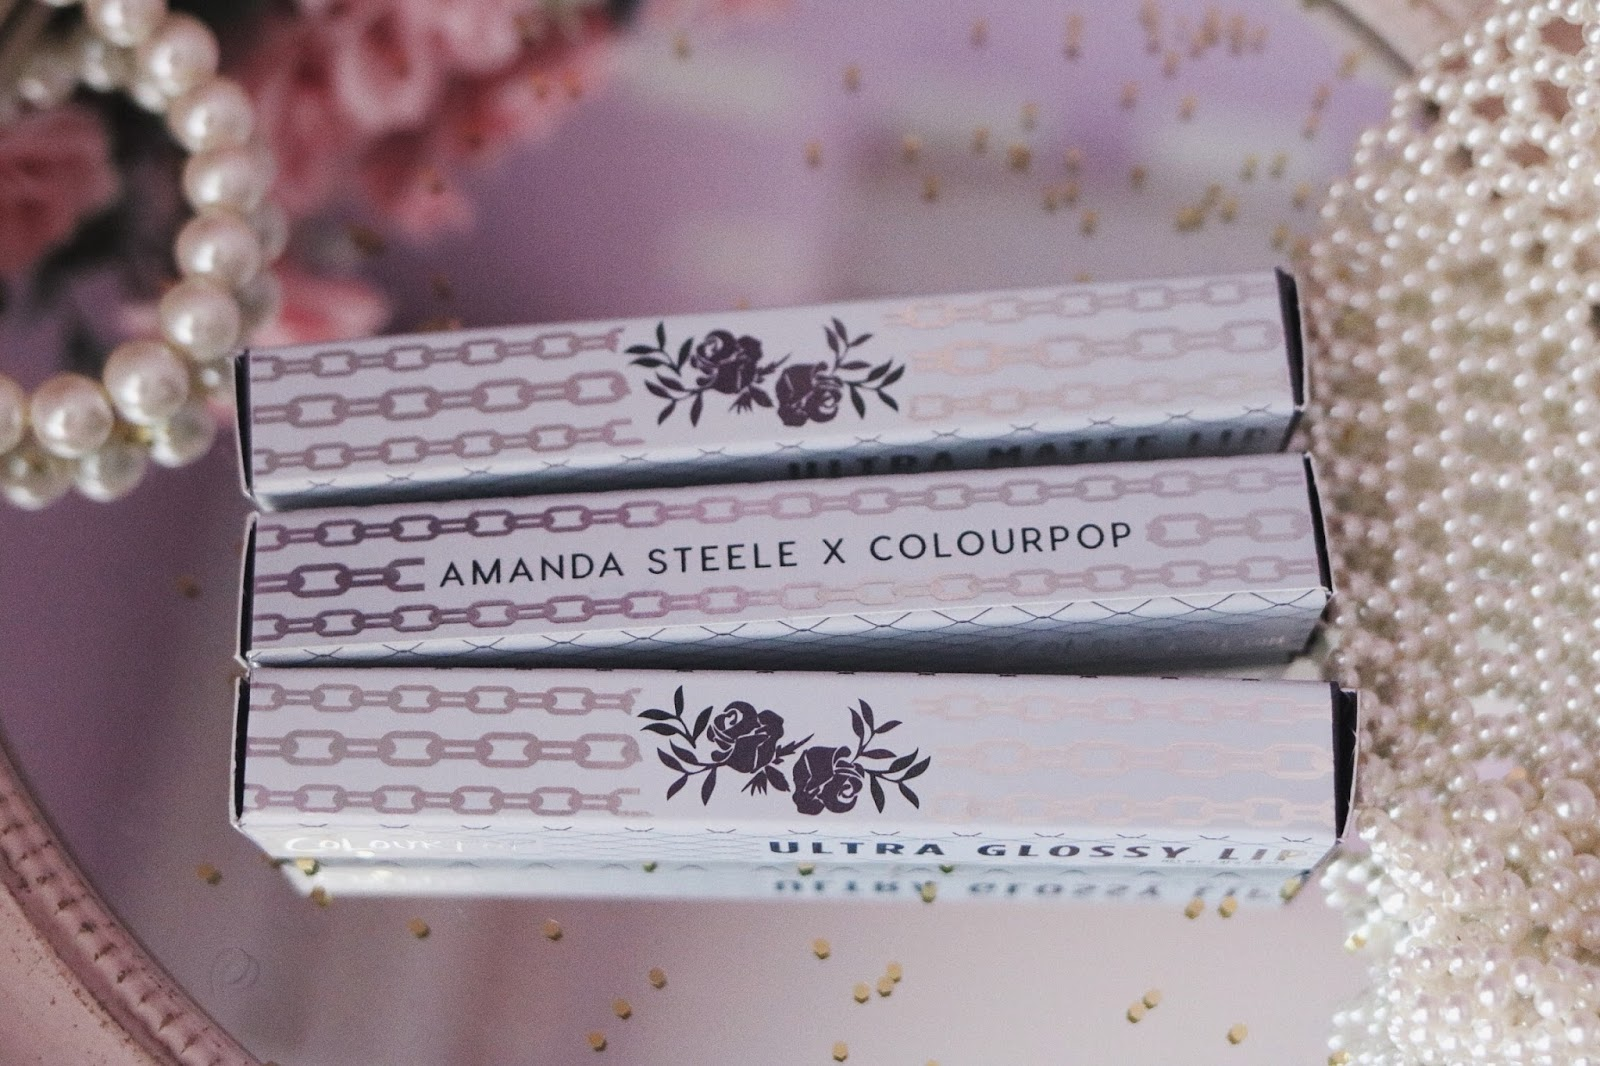 rosemademoiselle , rose mademoiselle , COLOURPOP , COLLABORATION , AMANDA STEELE , colourpopxamandasteele,maquillage ,makeup, ignition , steele , chaps , hack , jiffy , ultra satin lips , ultra matte lips , ultra glossy lips , super shock shadow,glitters , glitters eyes , revue , avis, paris , blog beauté